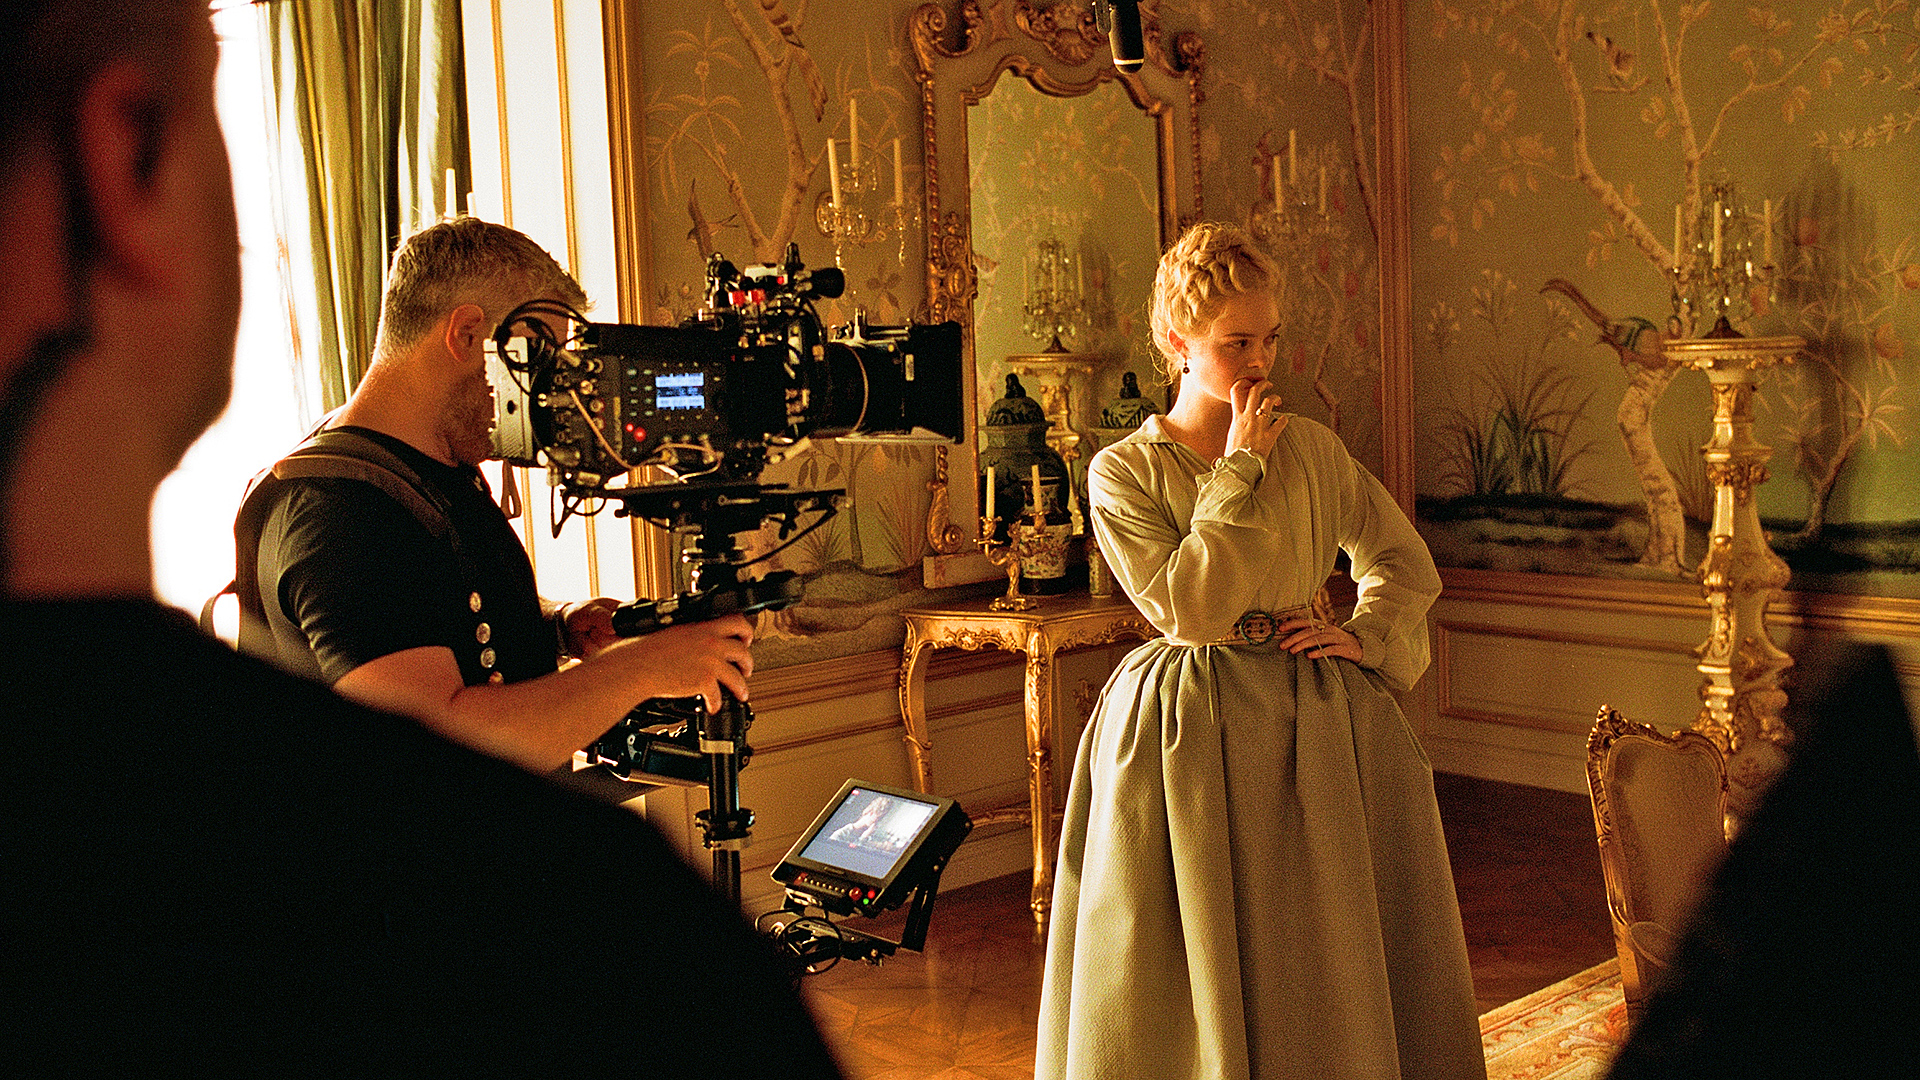 The ALEXA SXT Plus being used on the set of The Great.